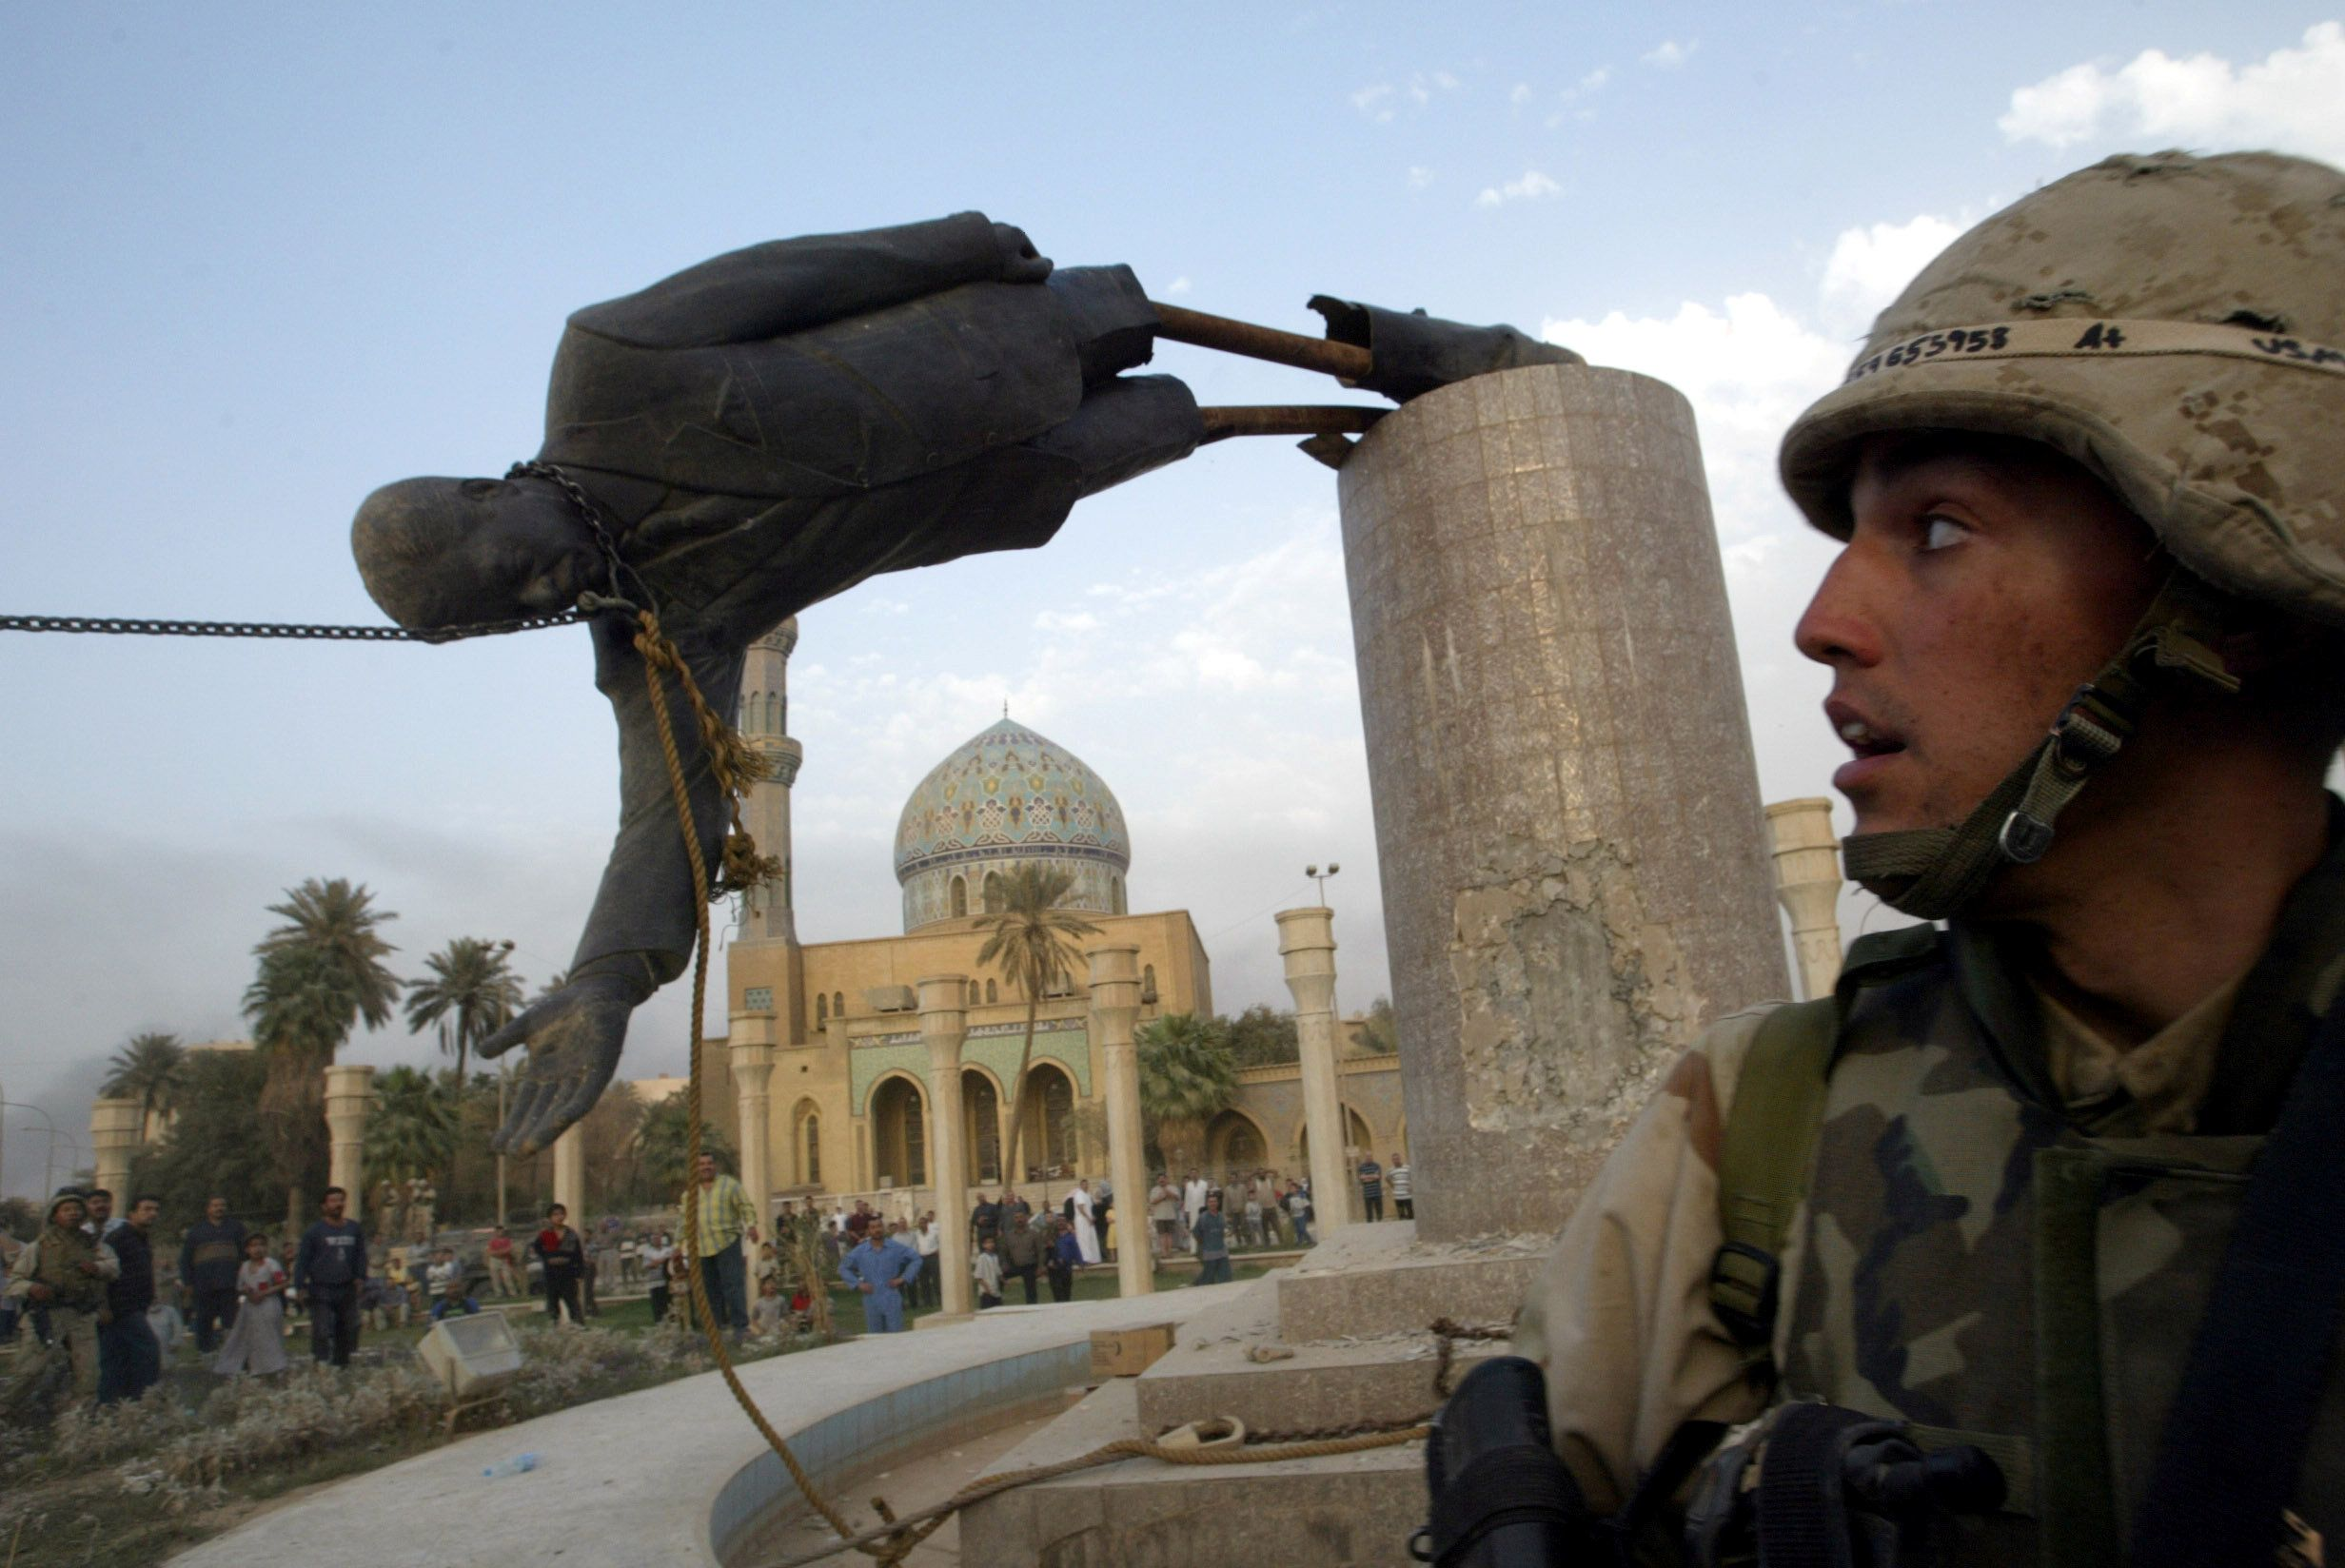 FILE PHOTO - A U.S. soldier watches as a statue of Iraq's President Saddam Hussein falls in central Baghdad, Iraq April 9, 2003. PREUTERS/Goran Tomasevic/File Photo